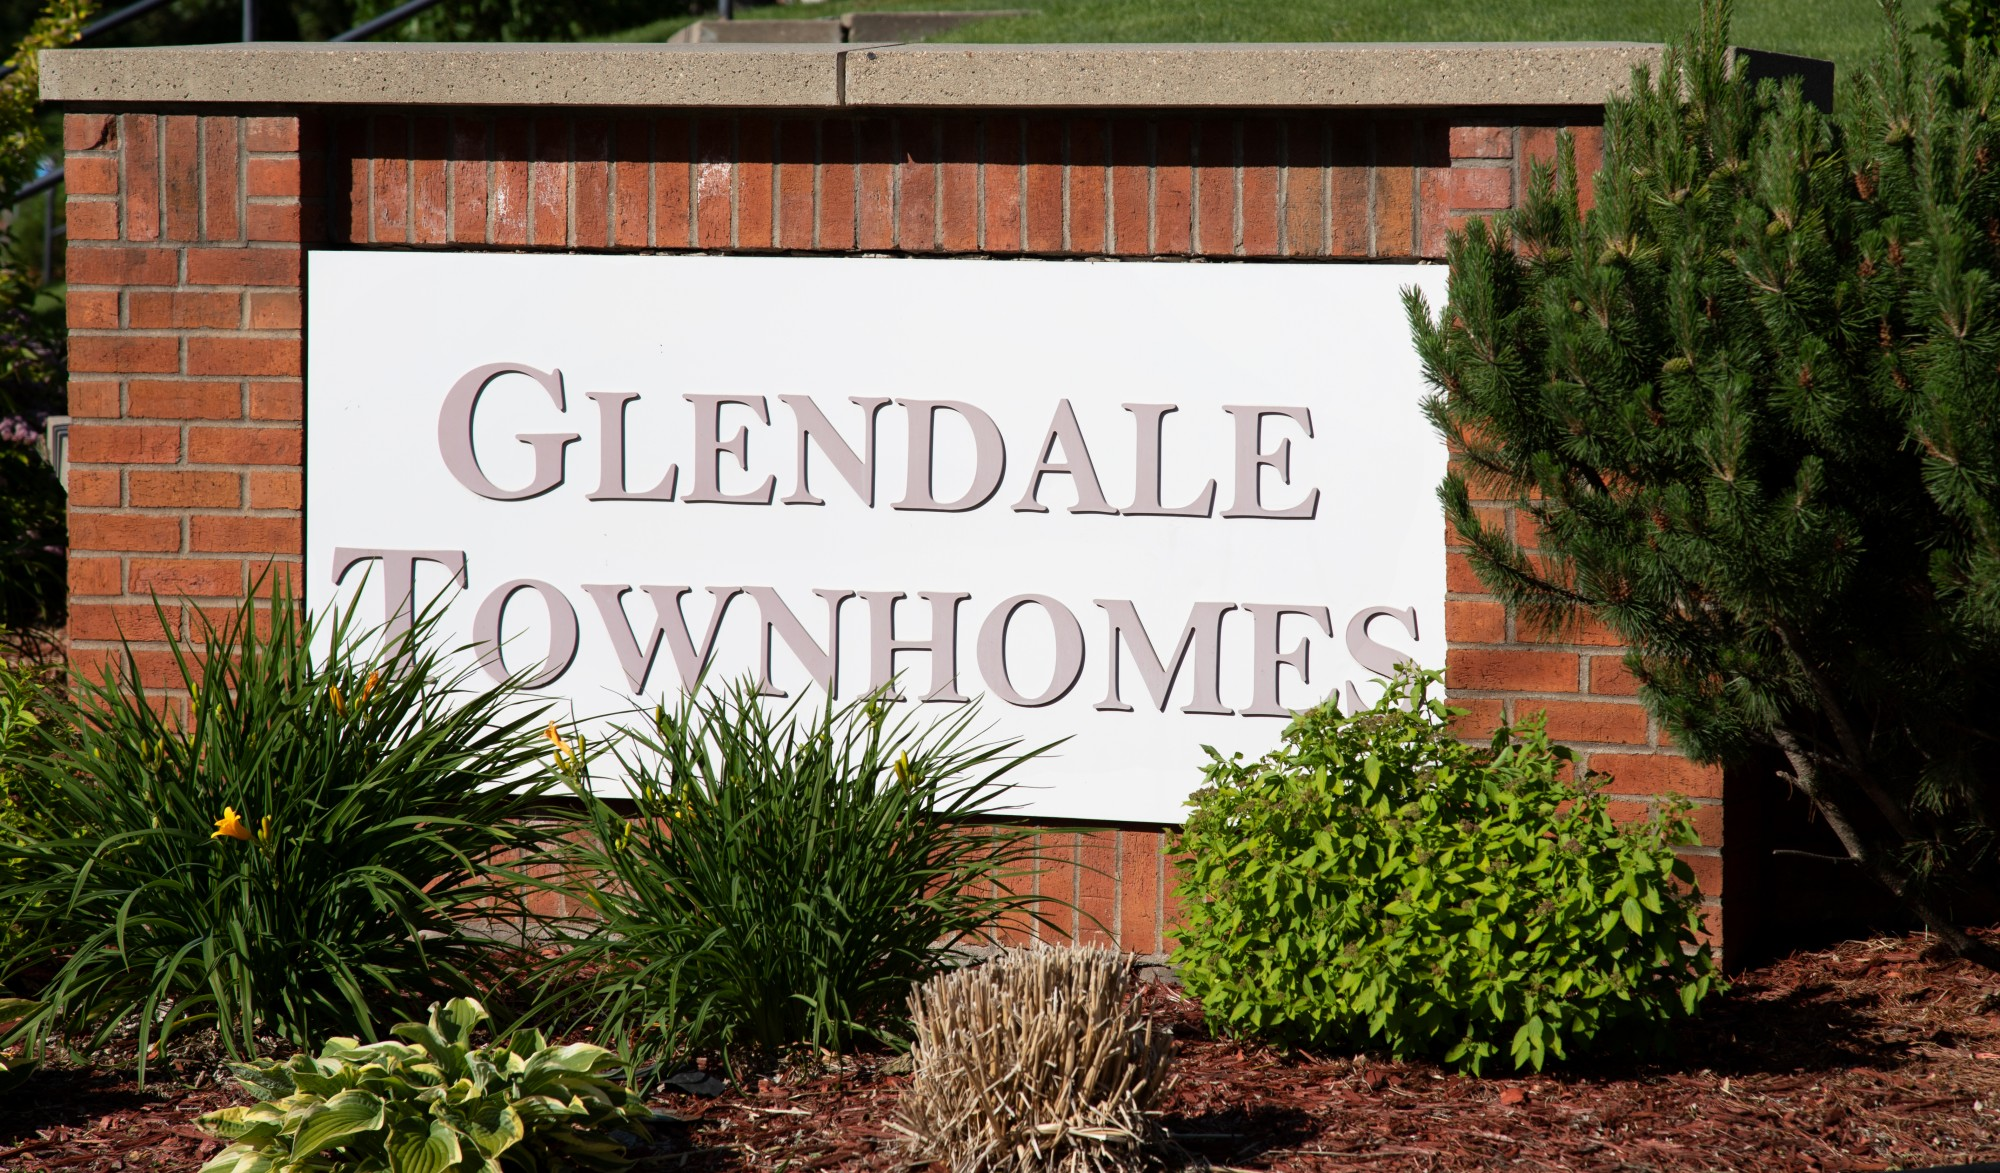 City Council and Glendale Townhomes butt heads over historic designation